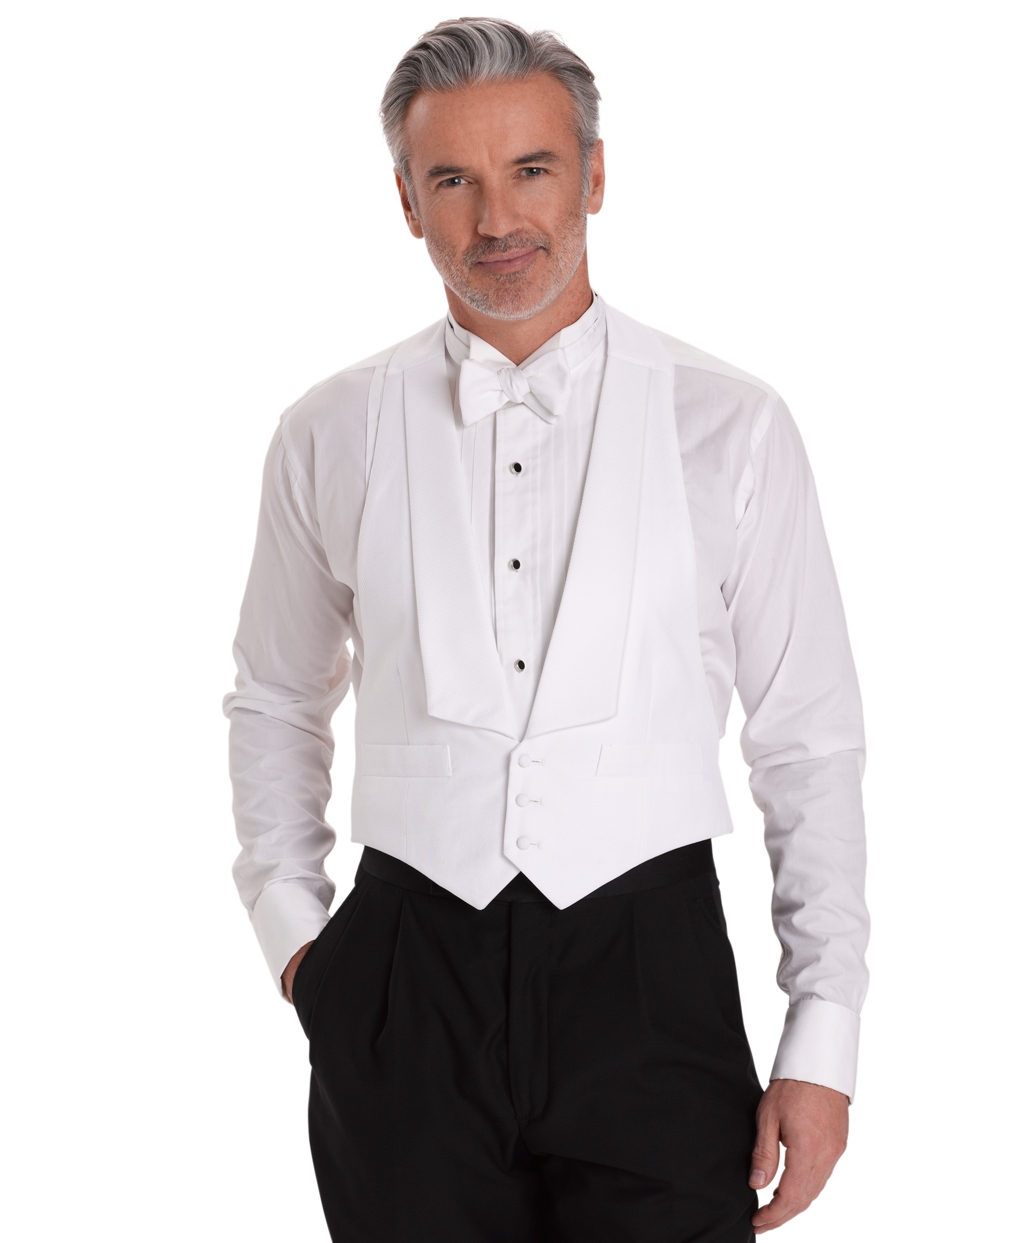 New Vintage Tuxedos, Tailcoats, Morning Suits, Dinner Jackets Brooks Brothers Mens White Cotton Pique Tuxedo Vest $225.00 AT vintagedancer.com